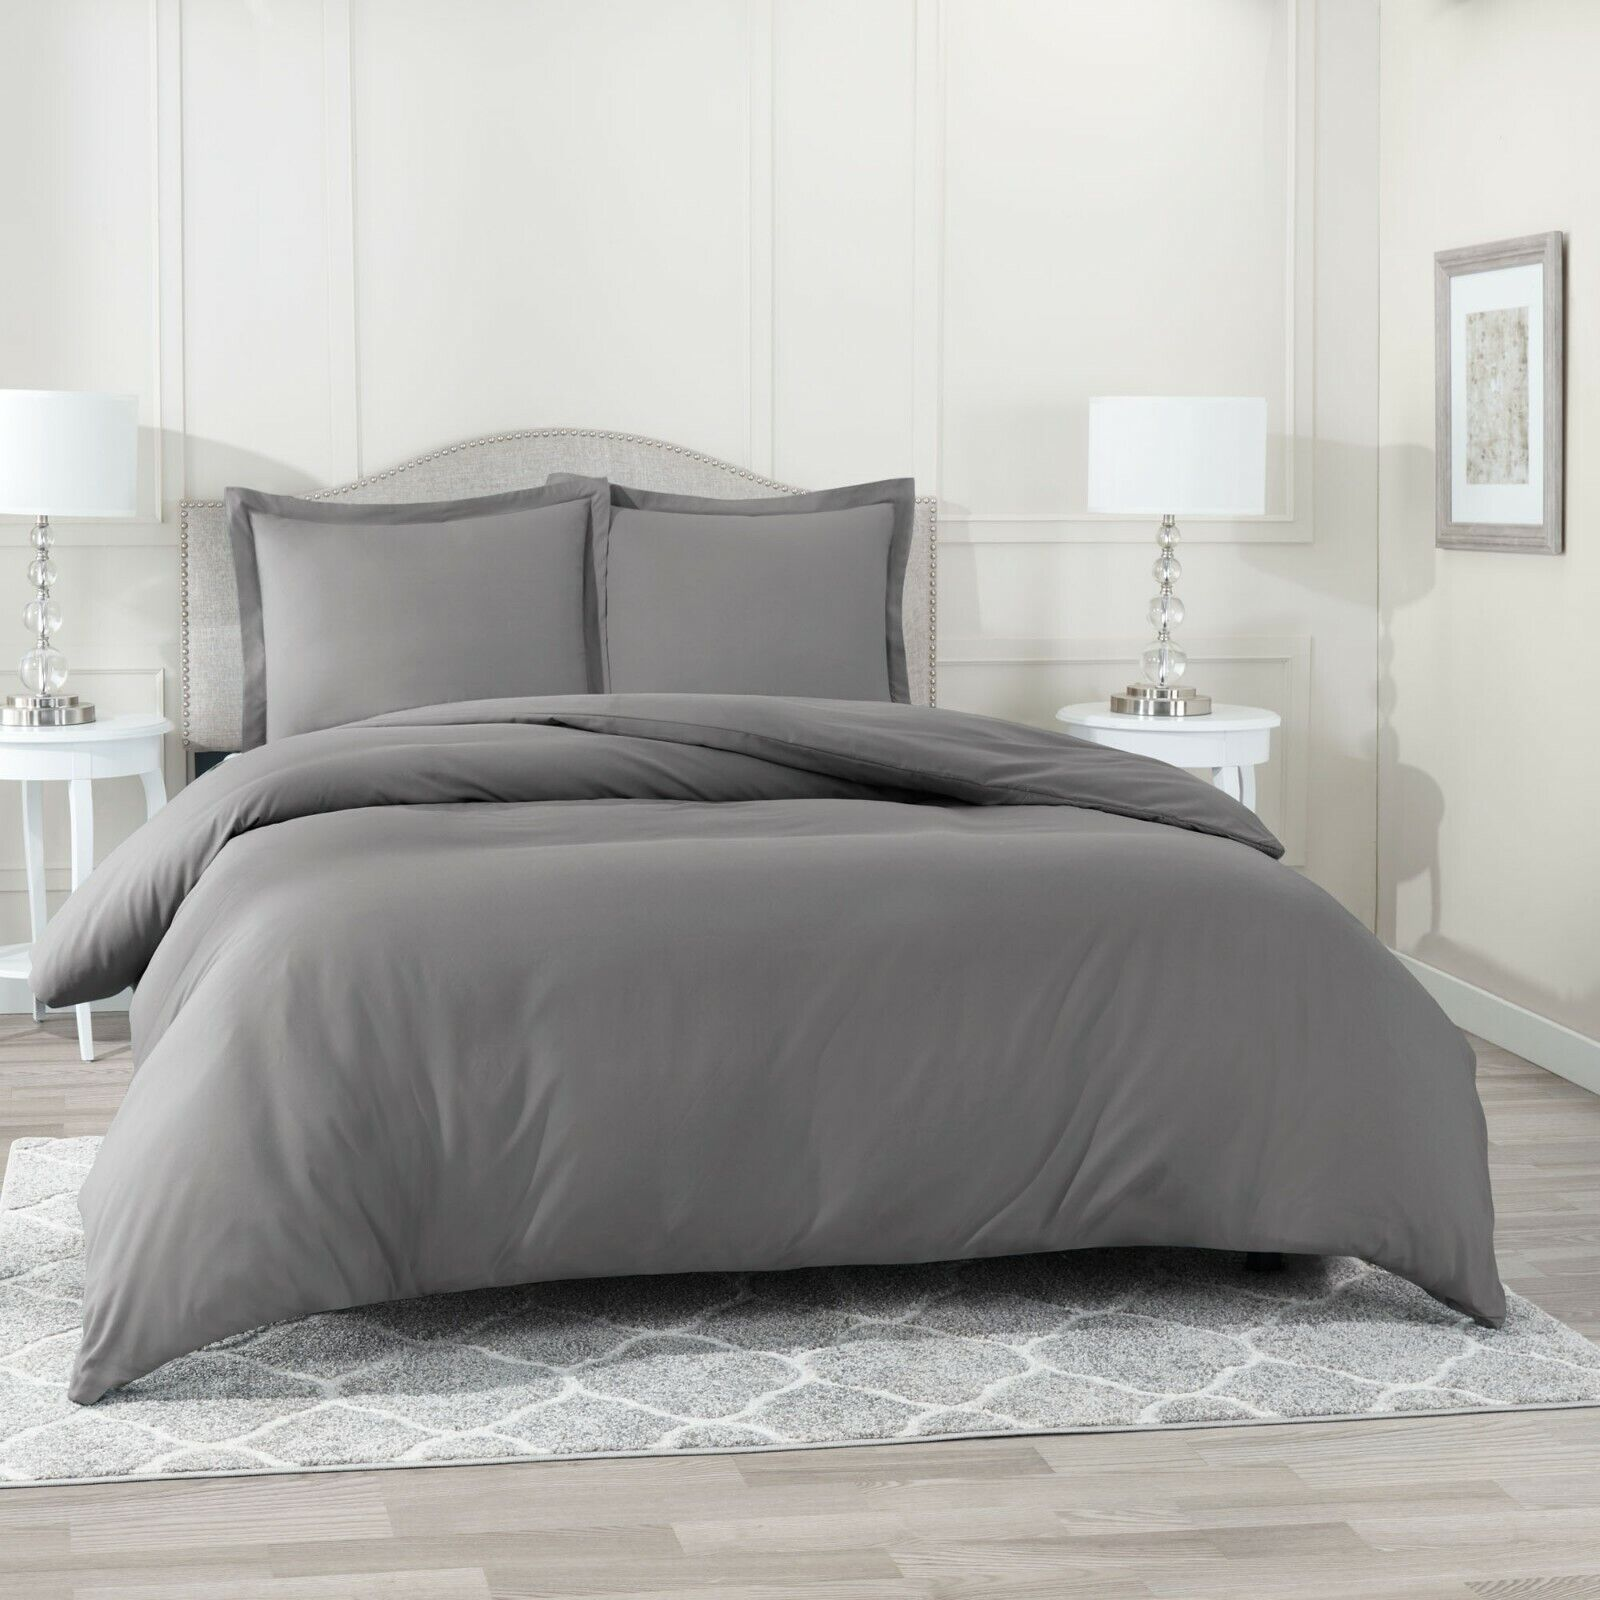 QUEEN DUVET COVER AND SHAMS 1500 COUNT SERIES -  12 Beautifu